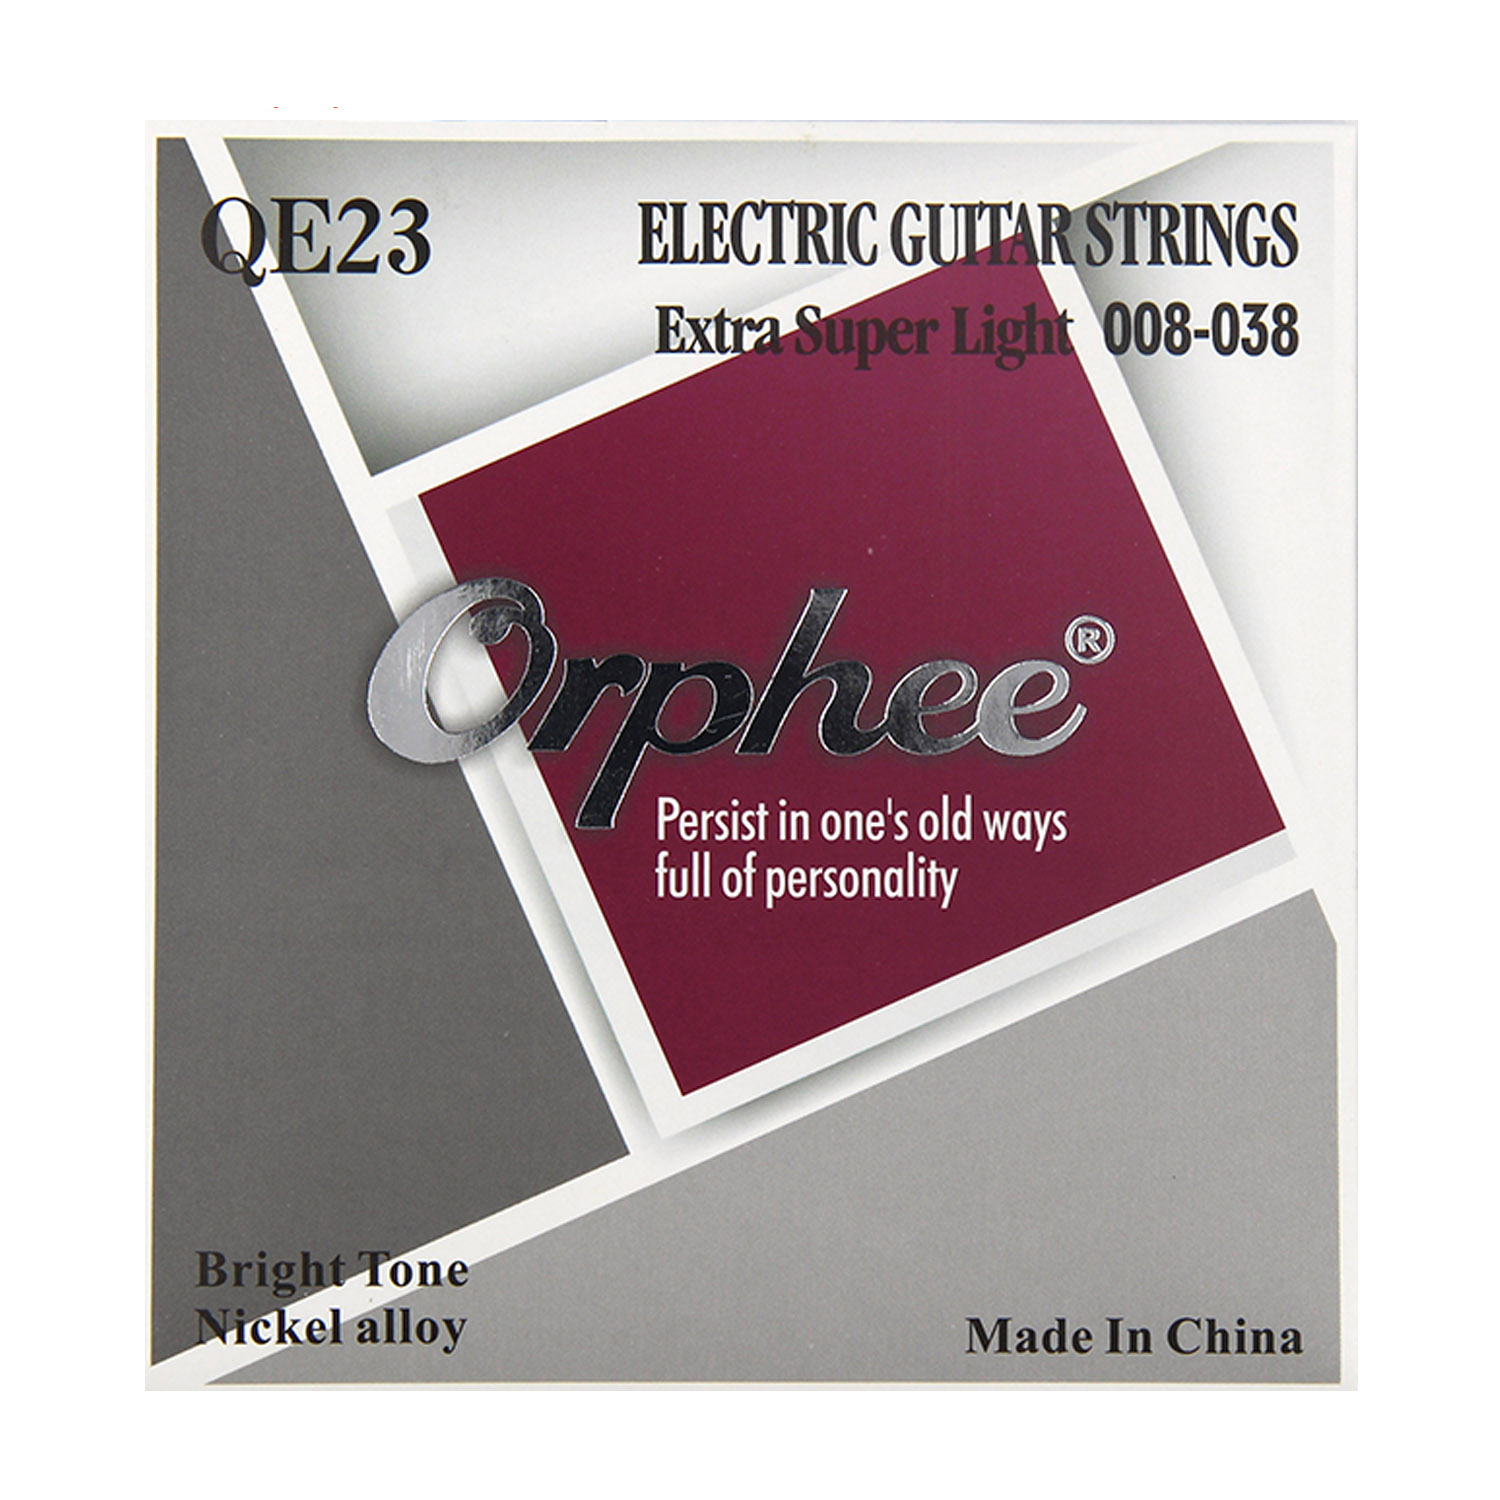 Electric Guitar Strings 008-038 Hexagonal Nickel alloy Orphee QE23 010 046 electric guitar strings nickel alloy orphee rx 17